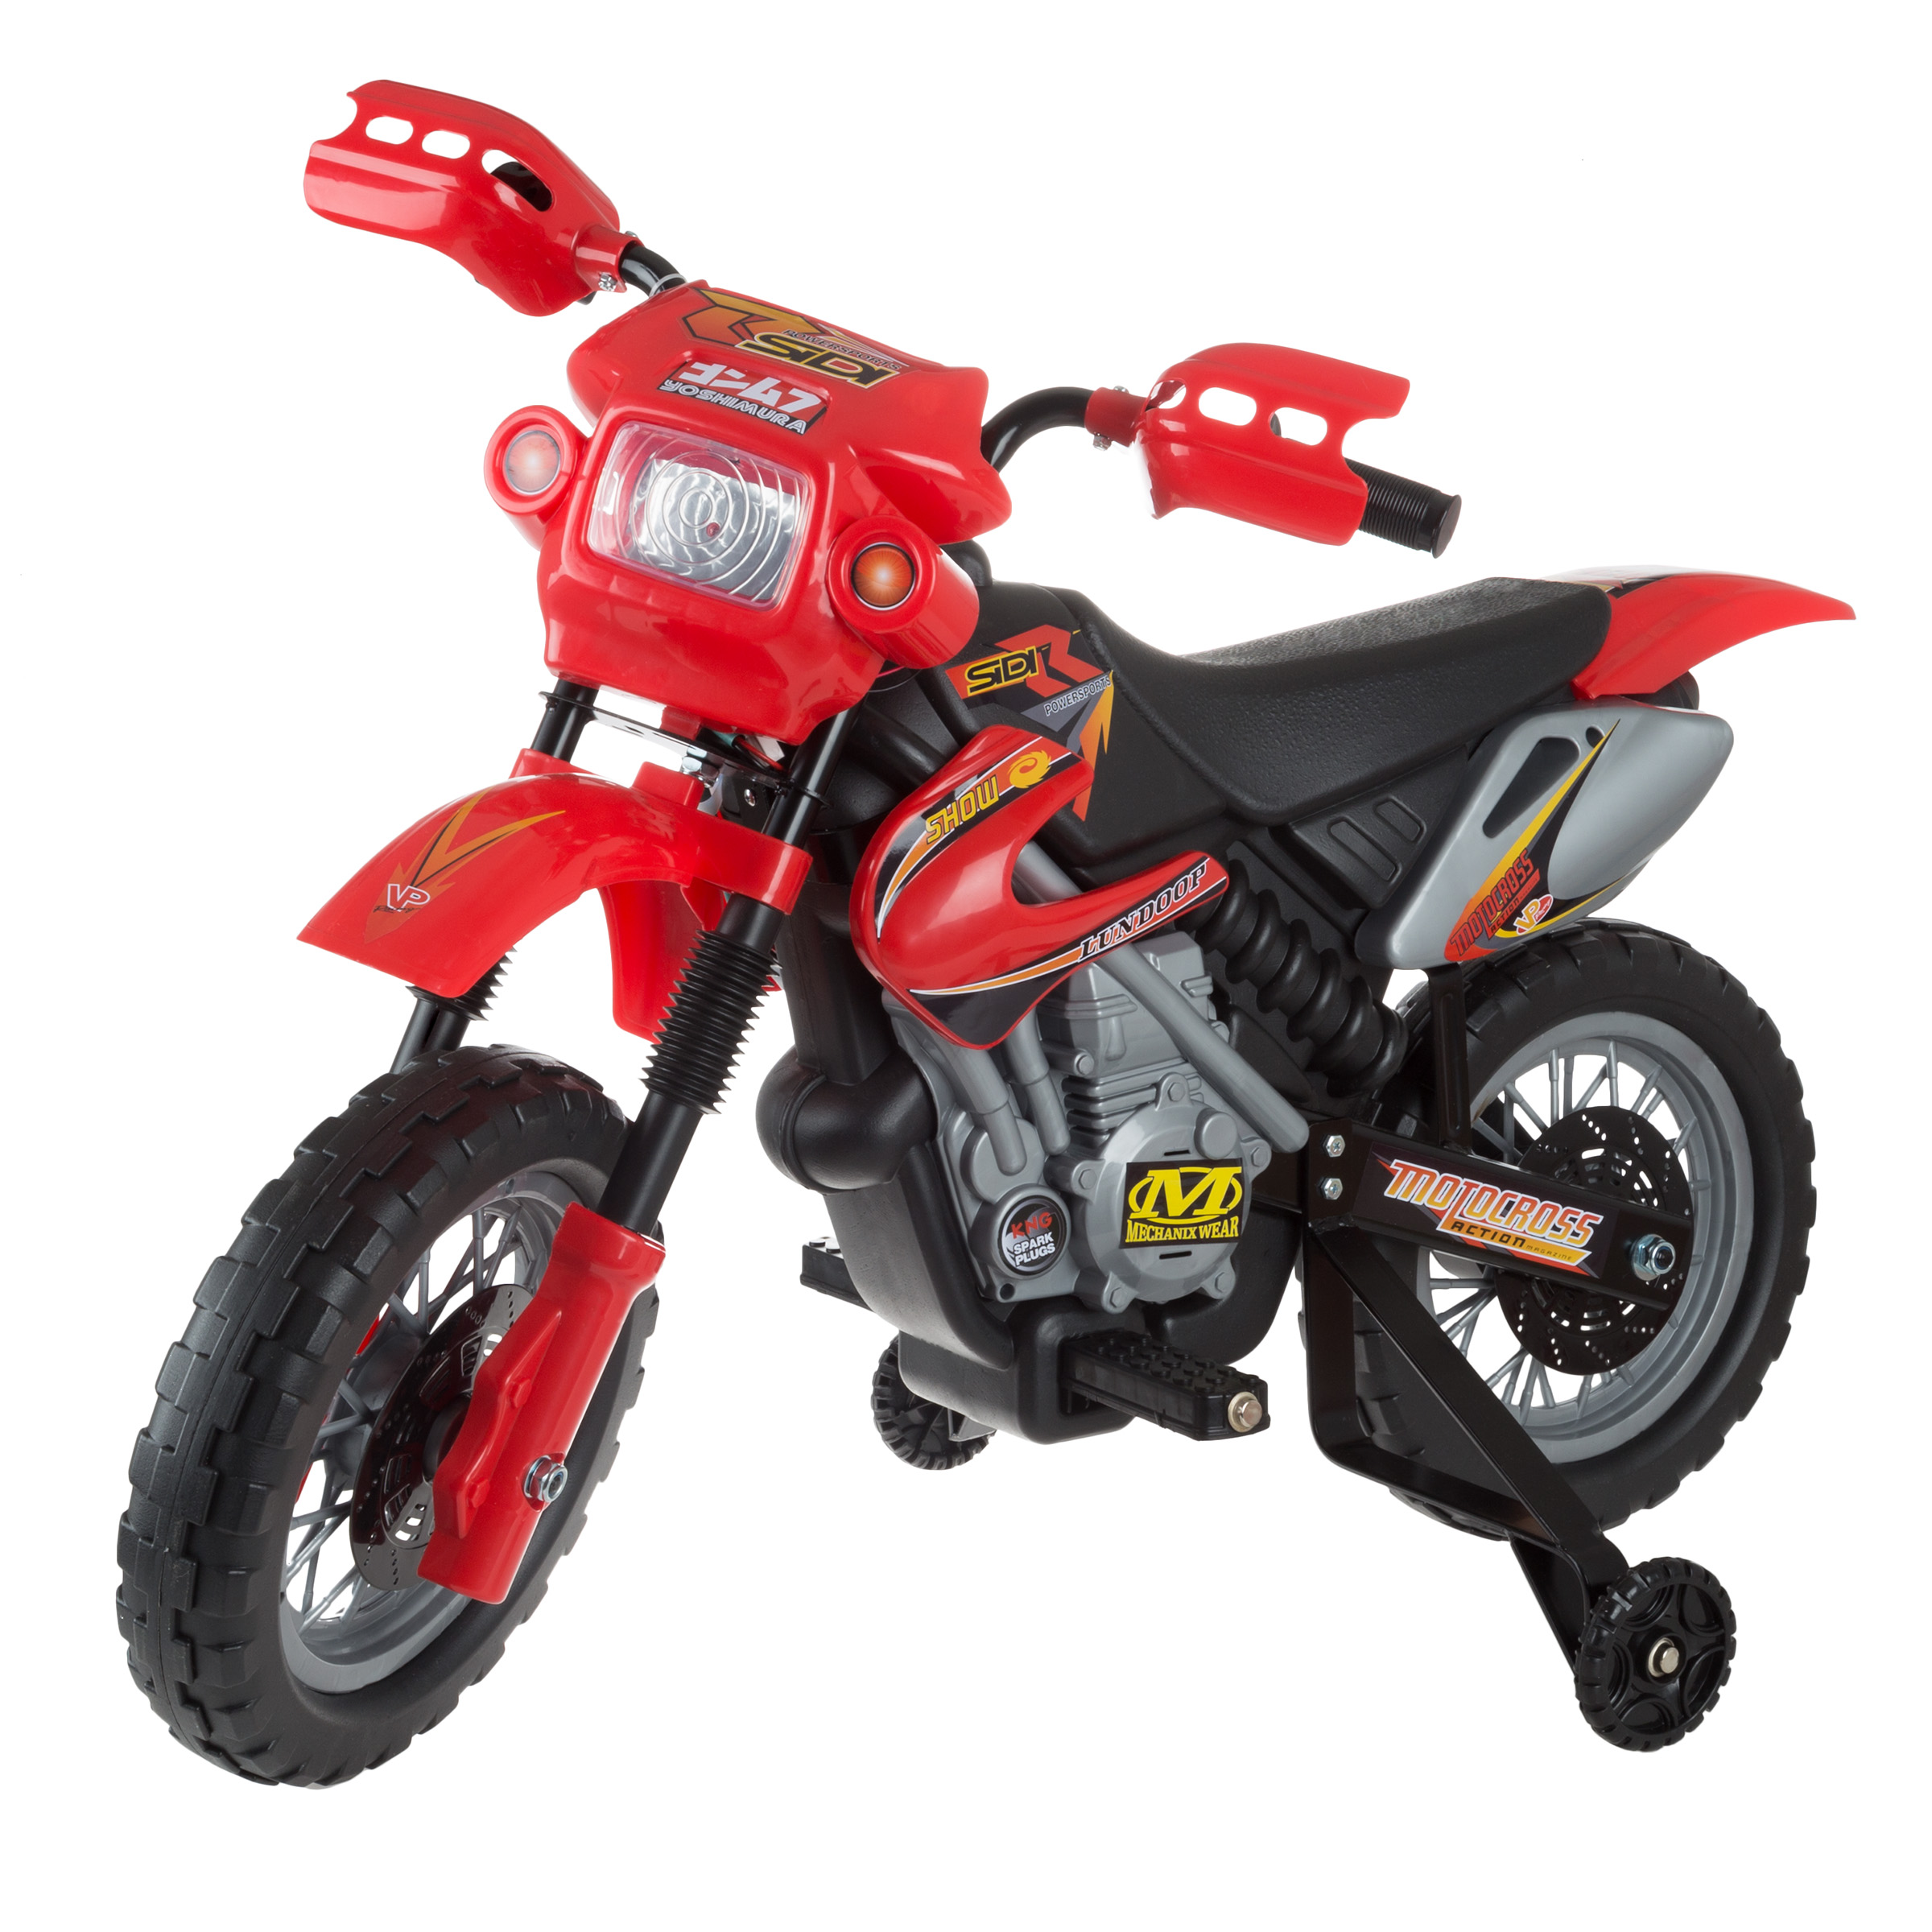 Kids Beginner Dirt Bike-Ride On Battery Powered Mini Motor Bike Toy with Training Wheels, Lights, and Sounds for Boys and Girls by LilÂ' Rider (Red)